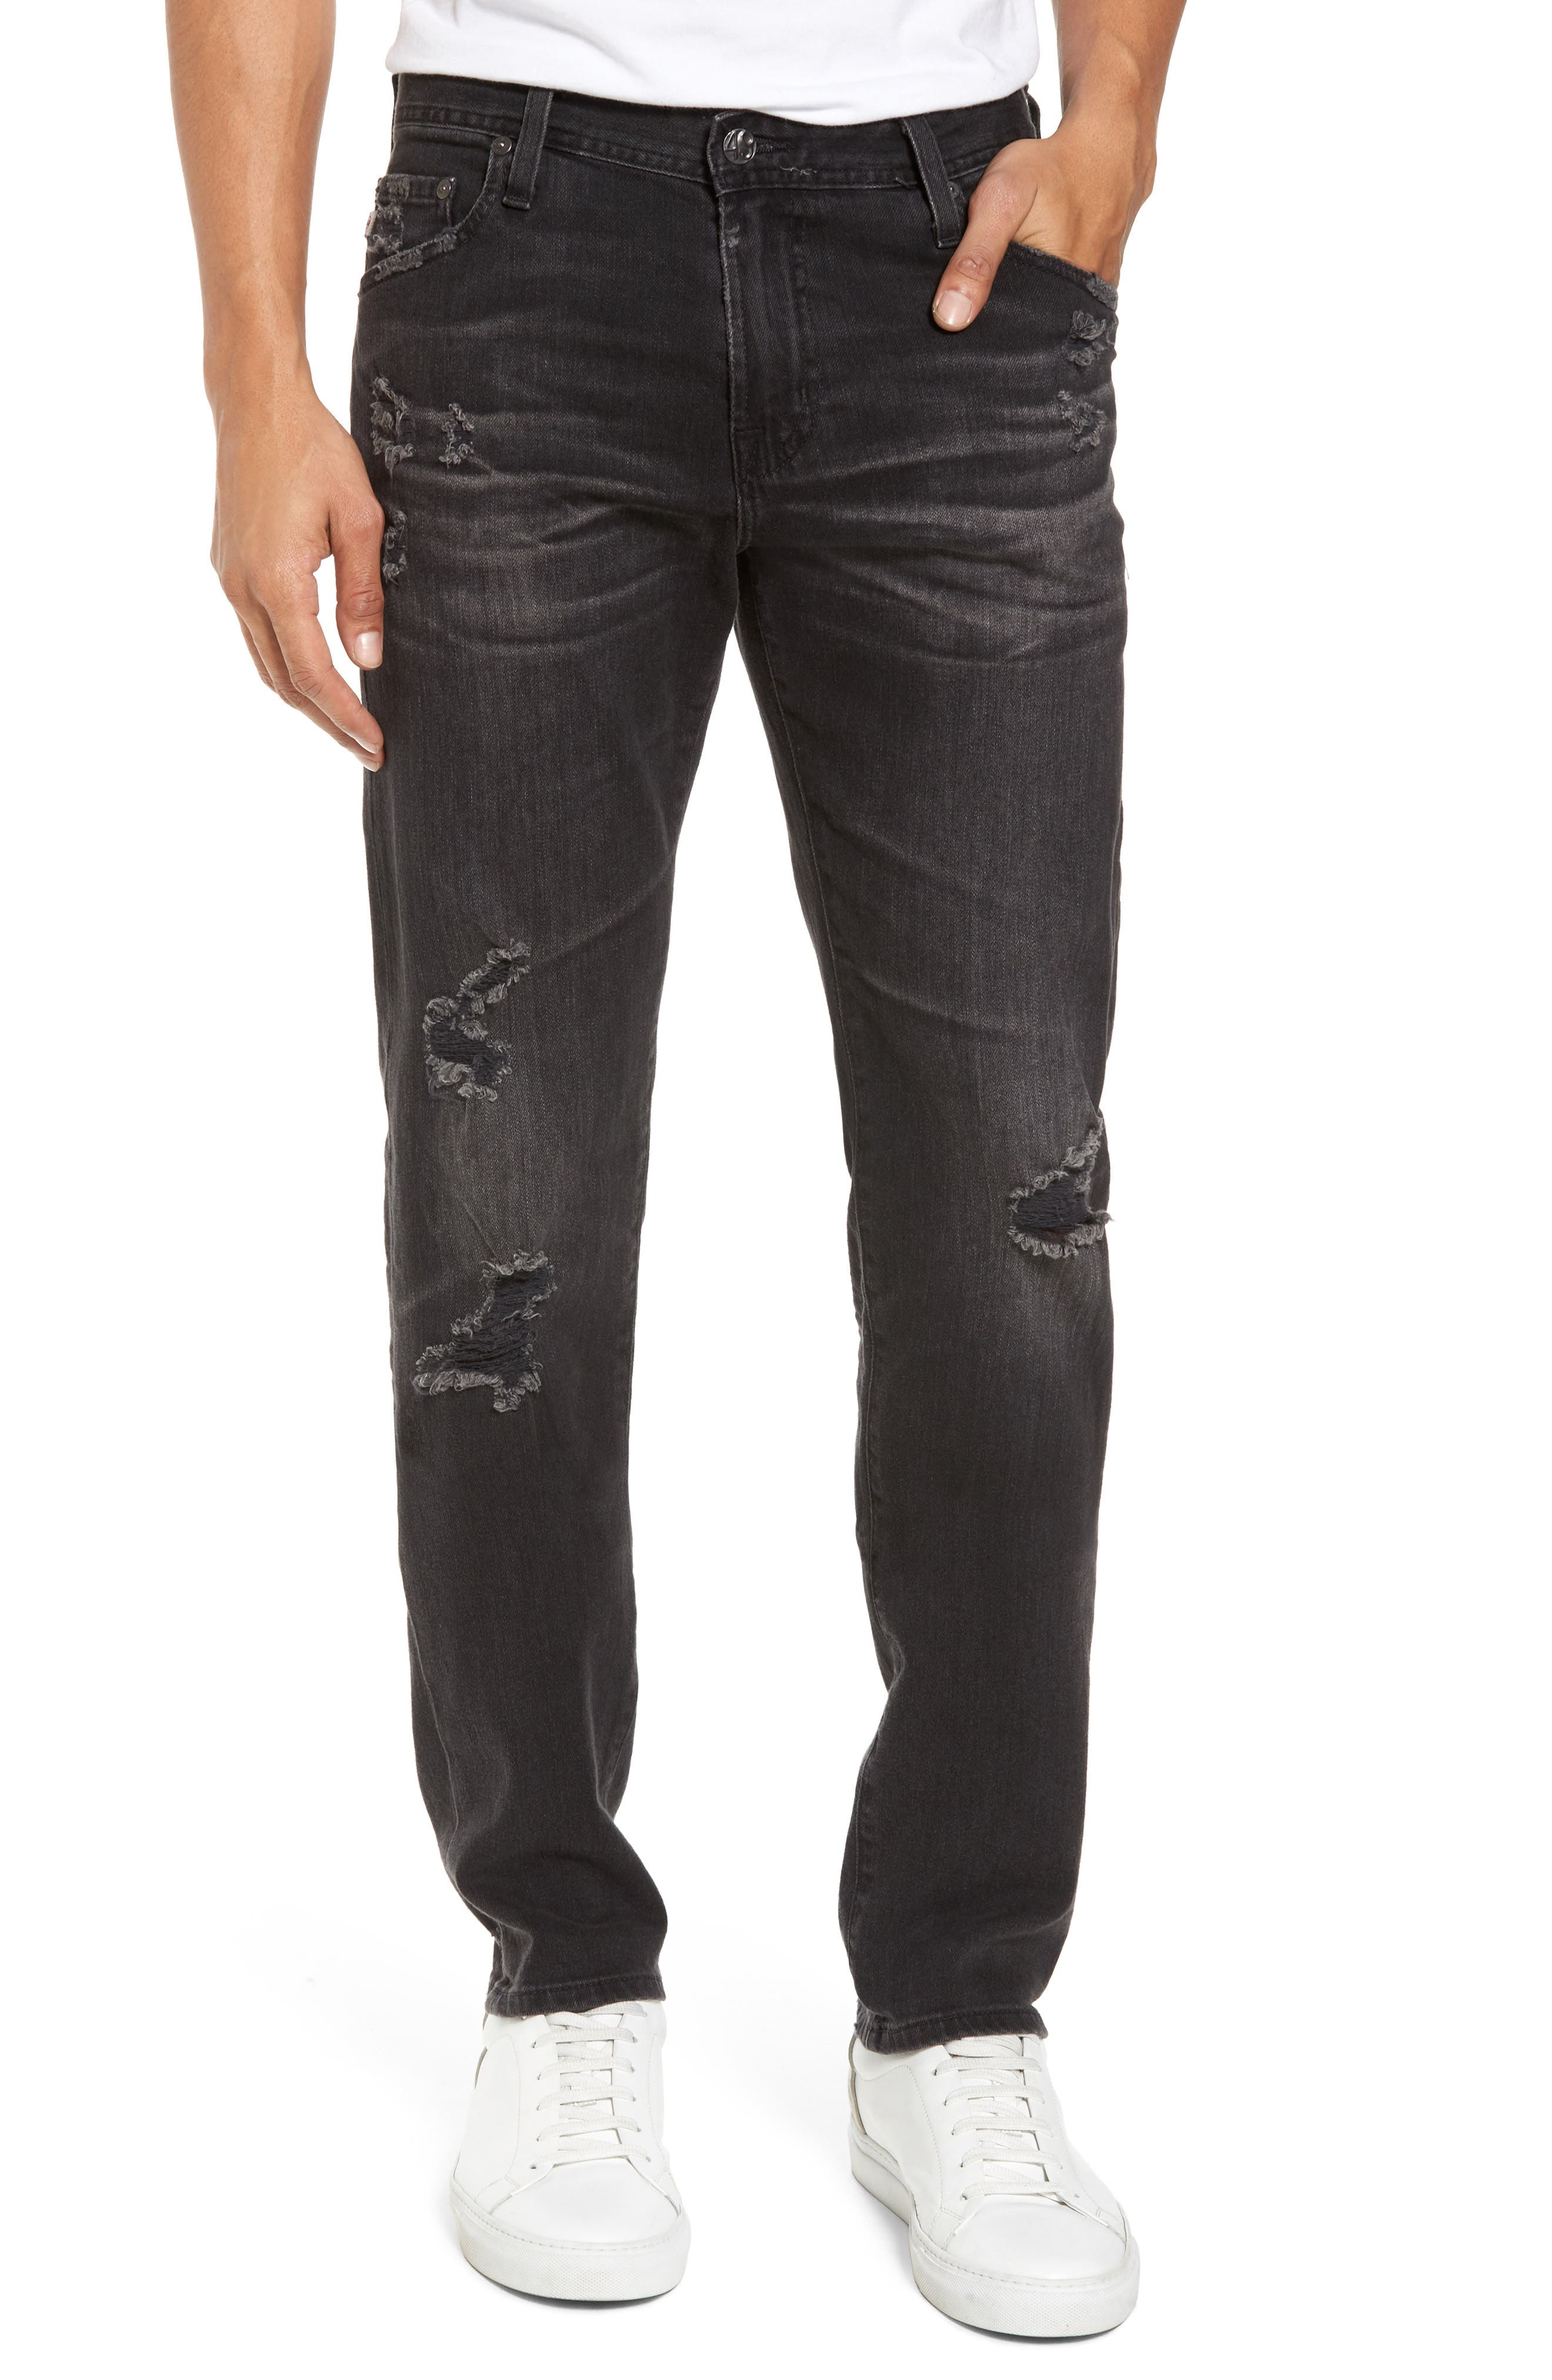 Tellis Slim Fit Jeans,                         Main,                         color,